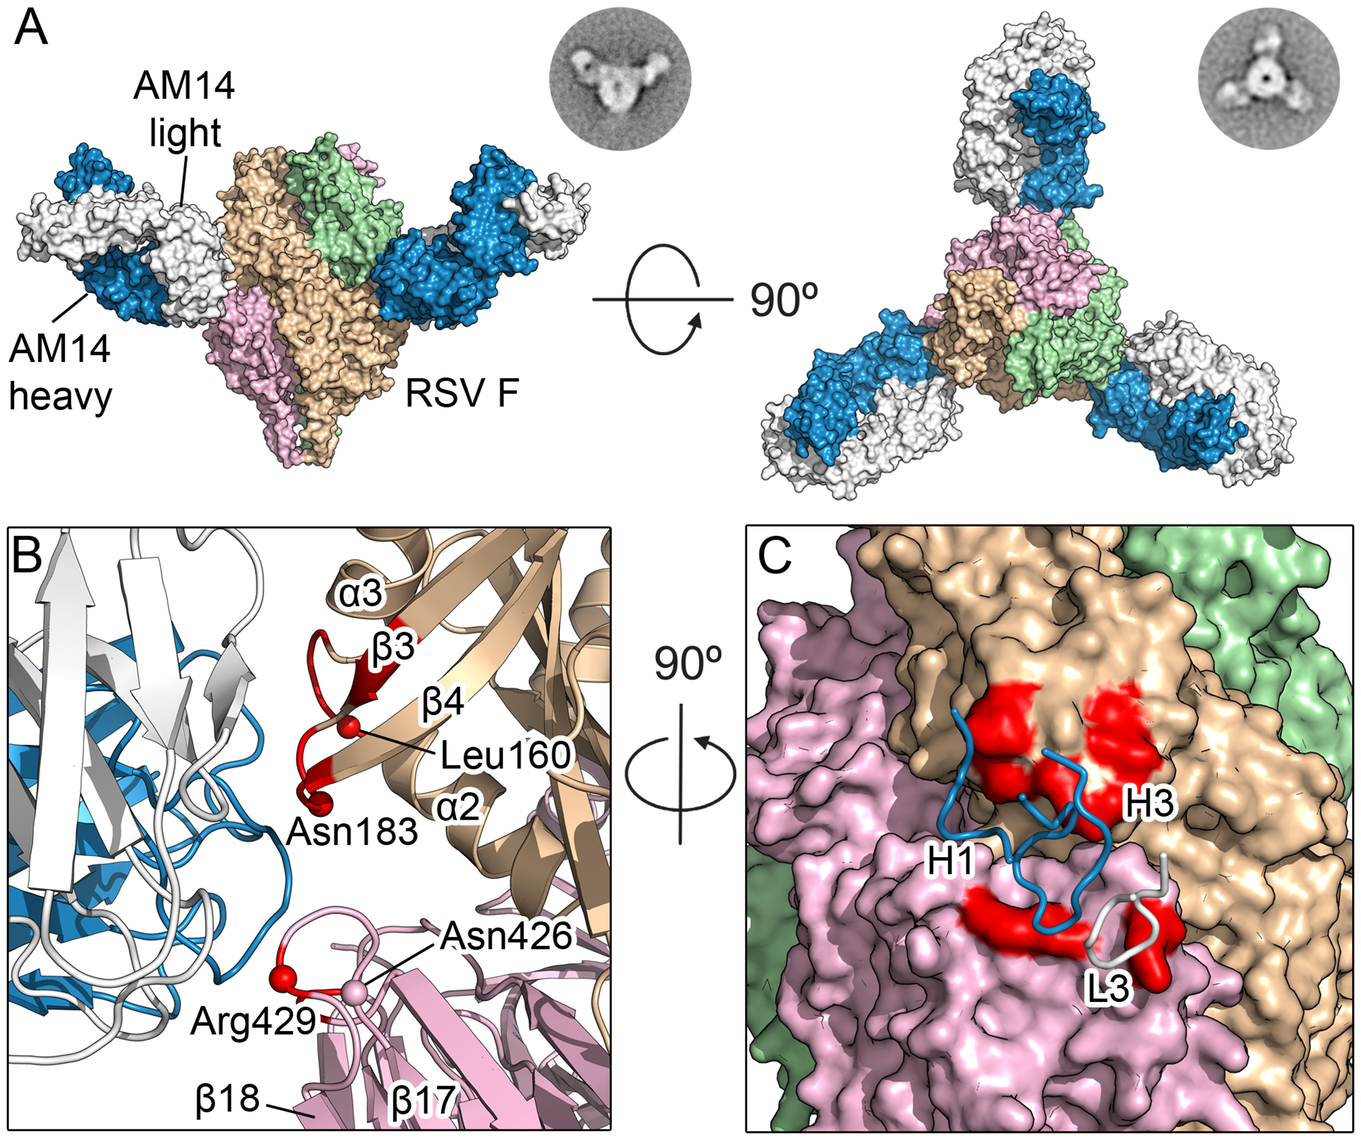 Structures of AM14 in complex with RSV F.